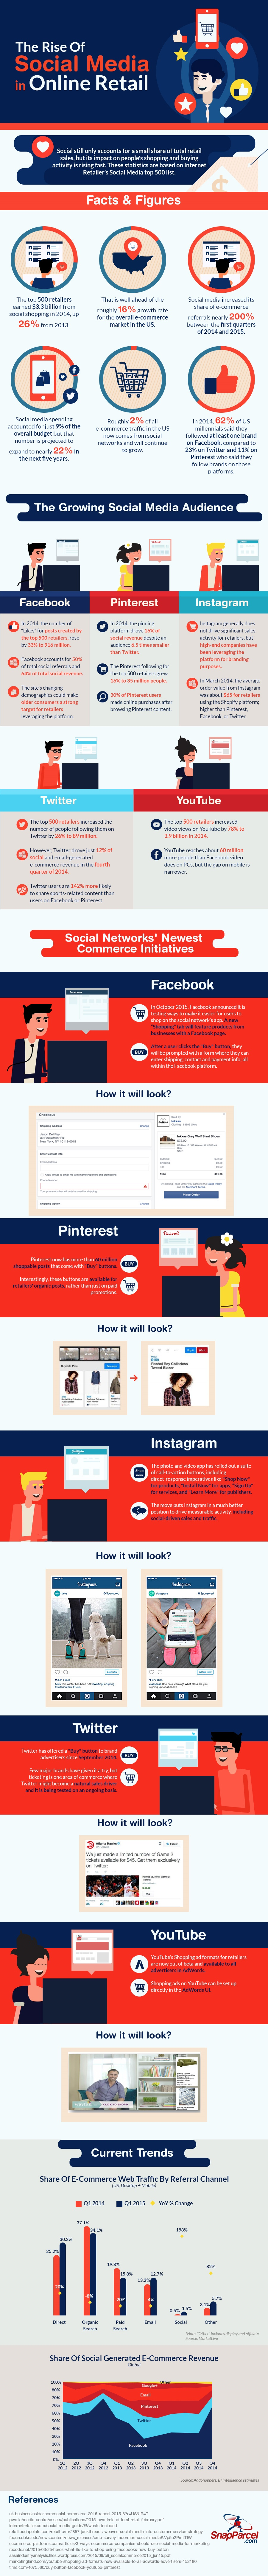 The Rise of Social Media in Online Retail infographic